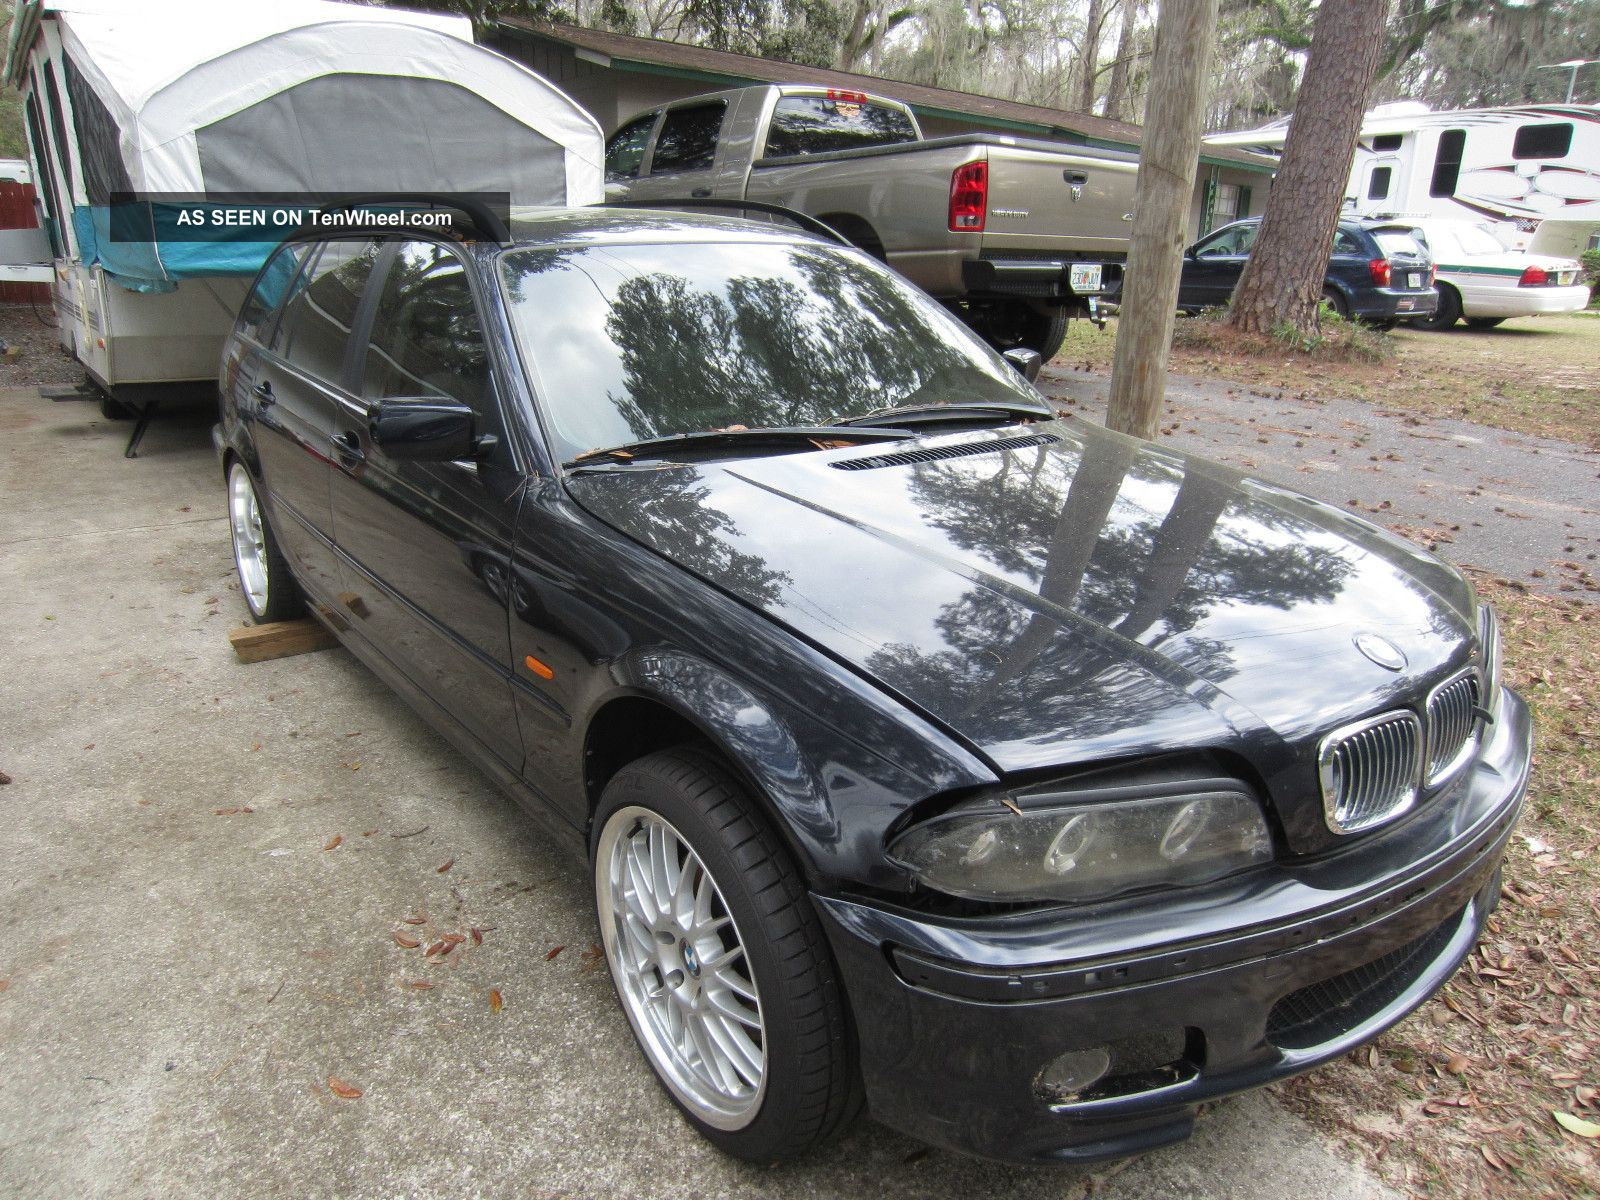 2000 Bmw 323it Wagon E46 M3 Suspension Project No Motor Or Transmission 3-Series photo